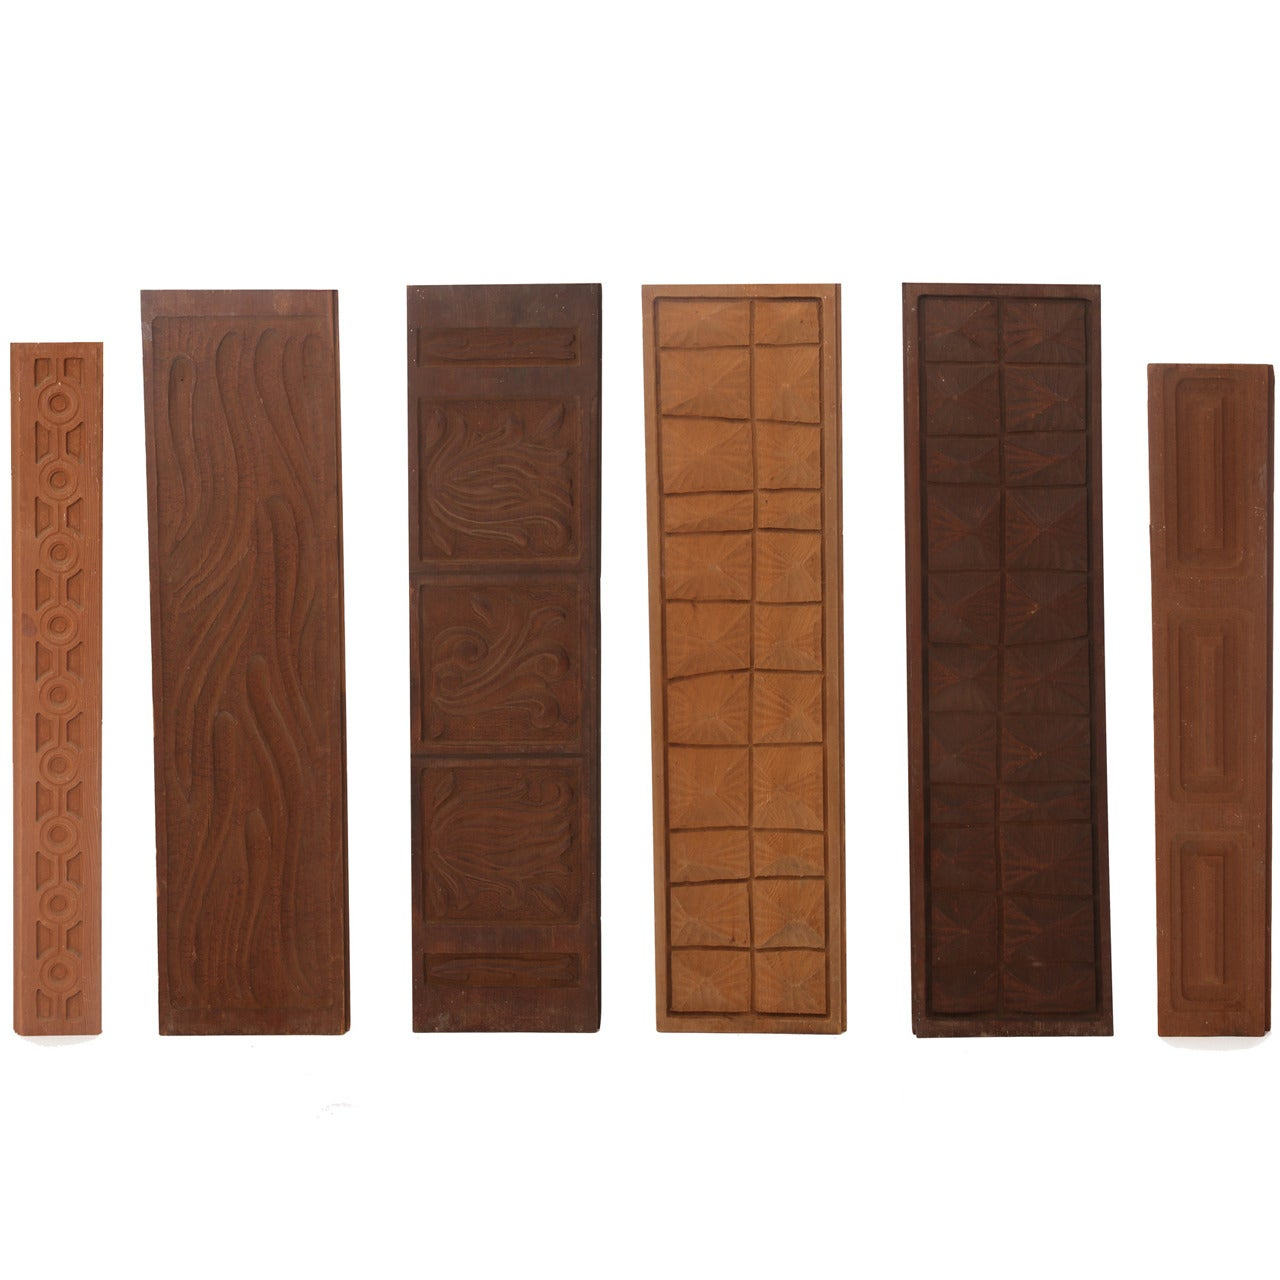 Evelyn Ackerman Wall Panels by Panelcarve